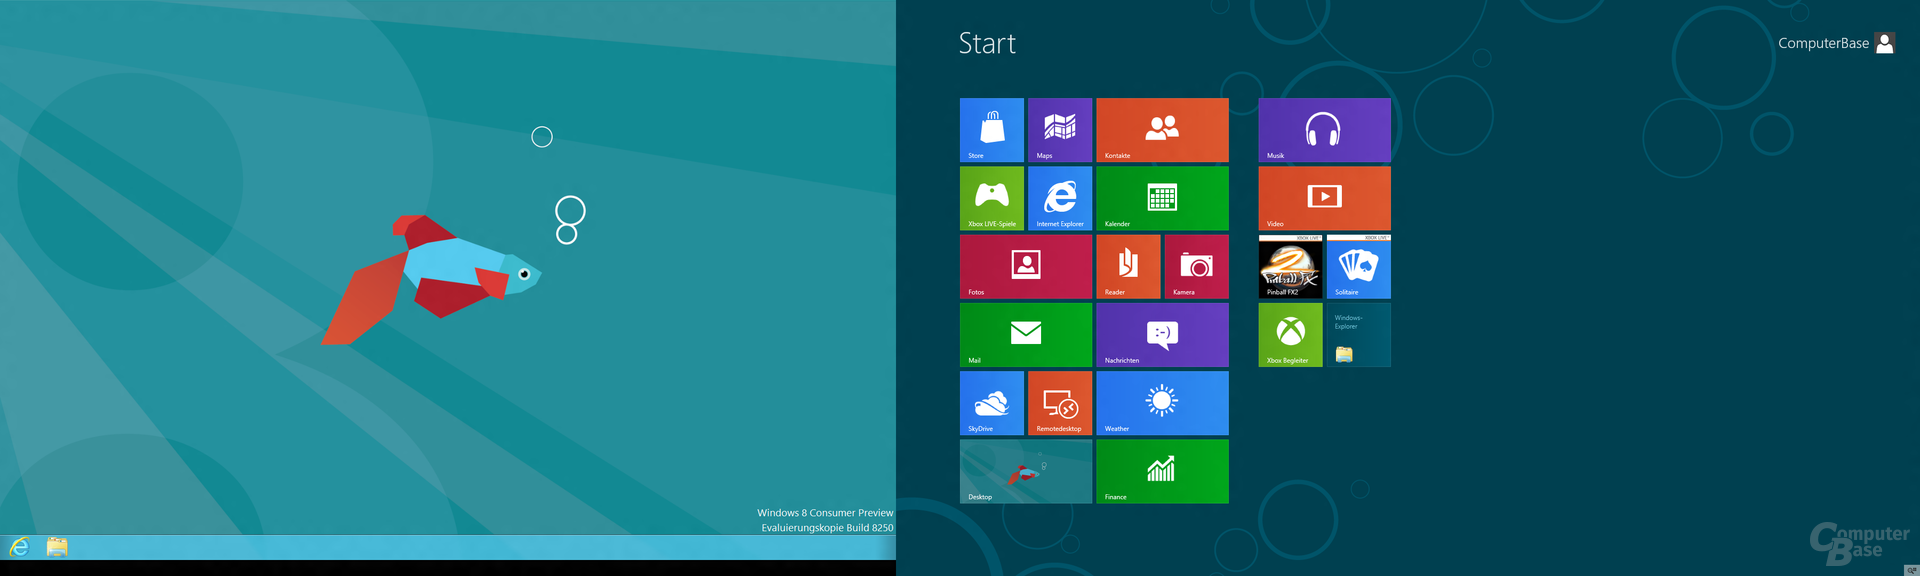 "Windows 8 ""Consumer Preview"" mit zwei Bildschirmen"